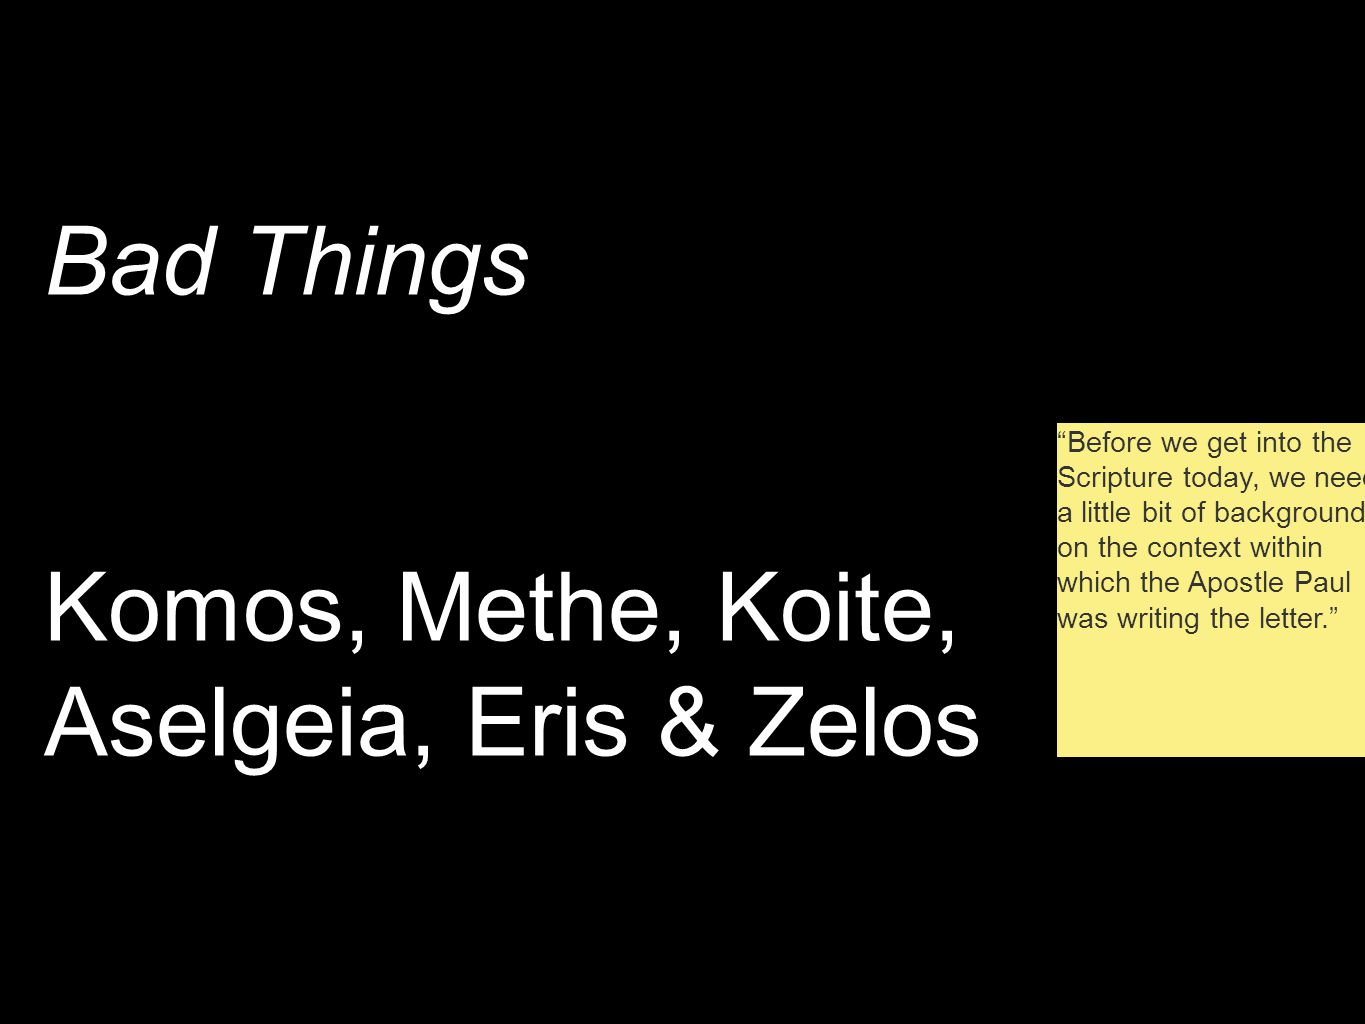 Bad Things Komos, Methe, Koite, Aselgeia, Eris & Zelos Before we get into the Scripture today, we need a little bit of background on the context within which the Apostle Paul was writing the letter.